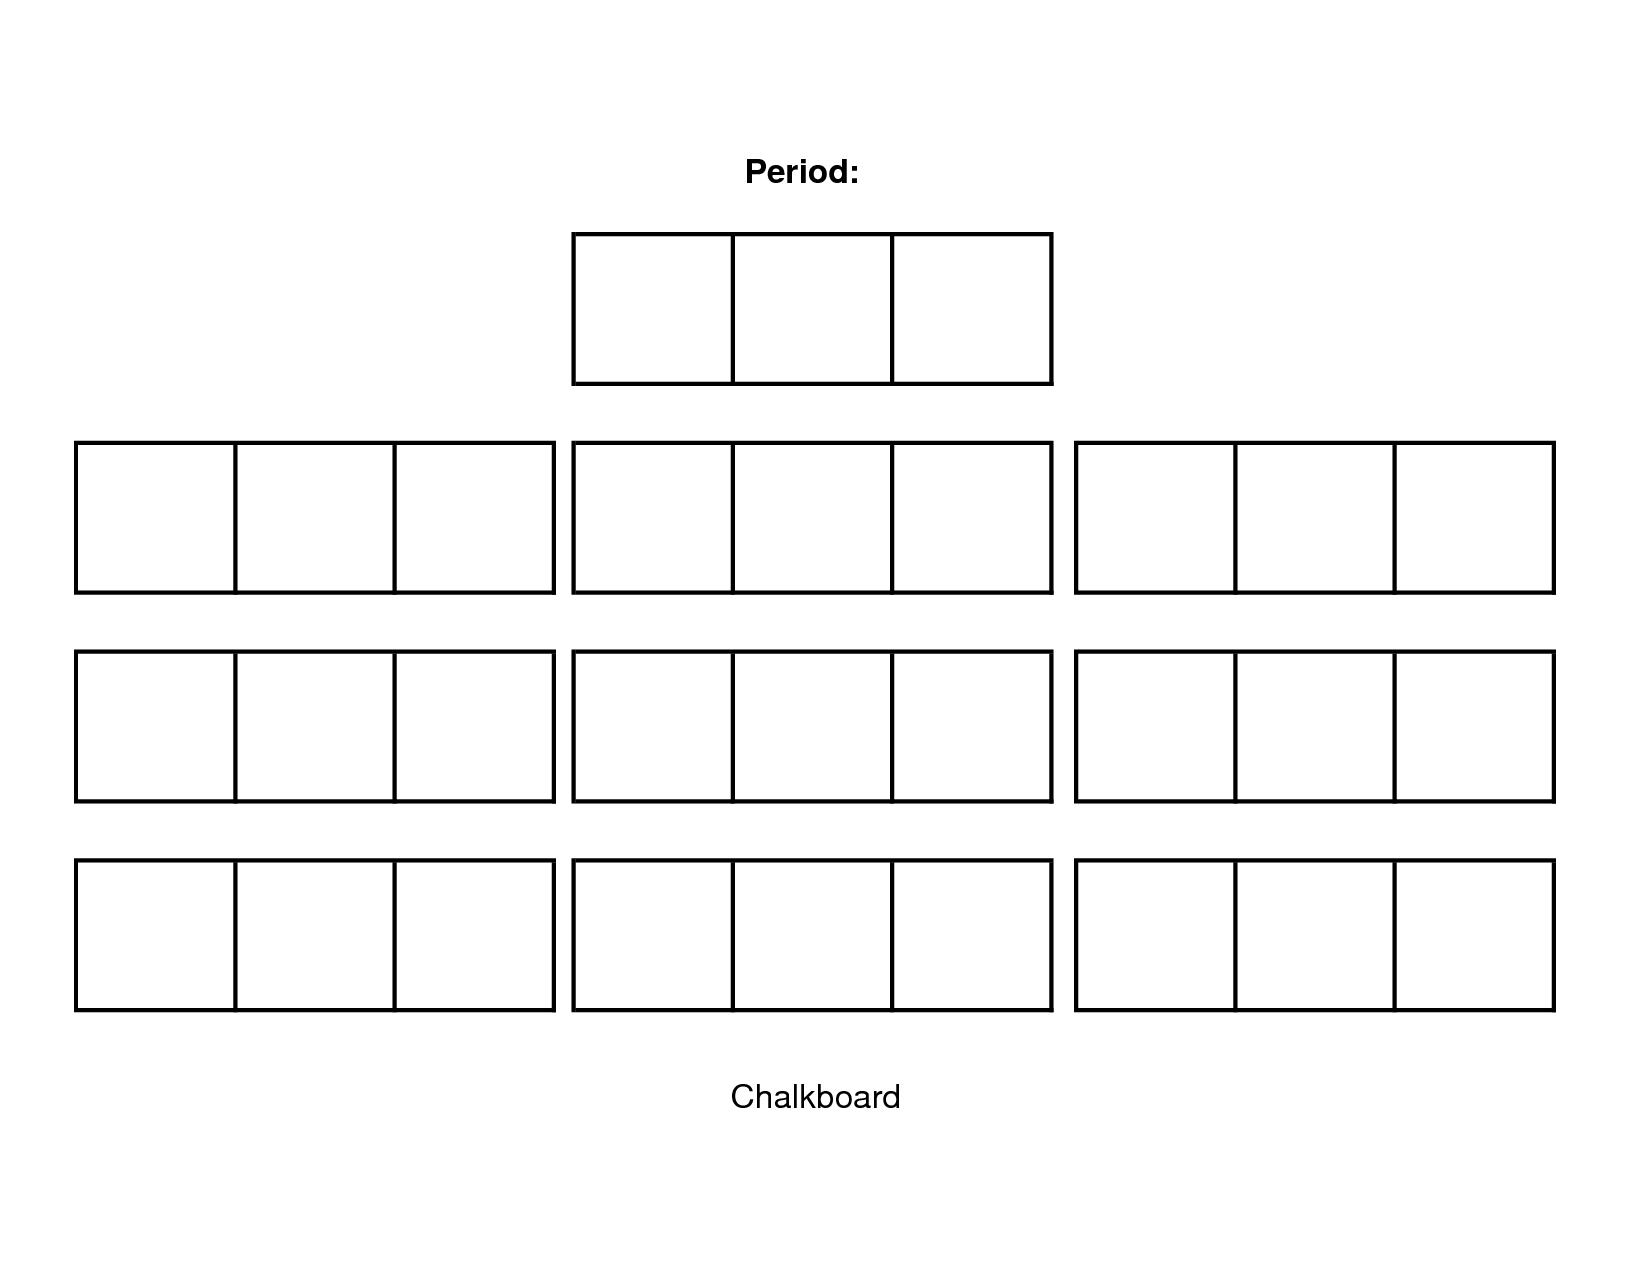 Classroom Seating Chart Template Free Download